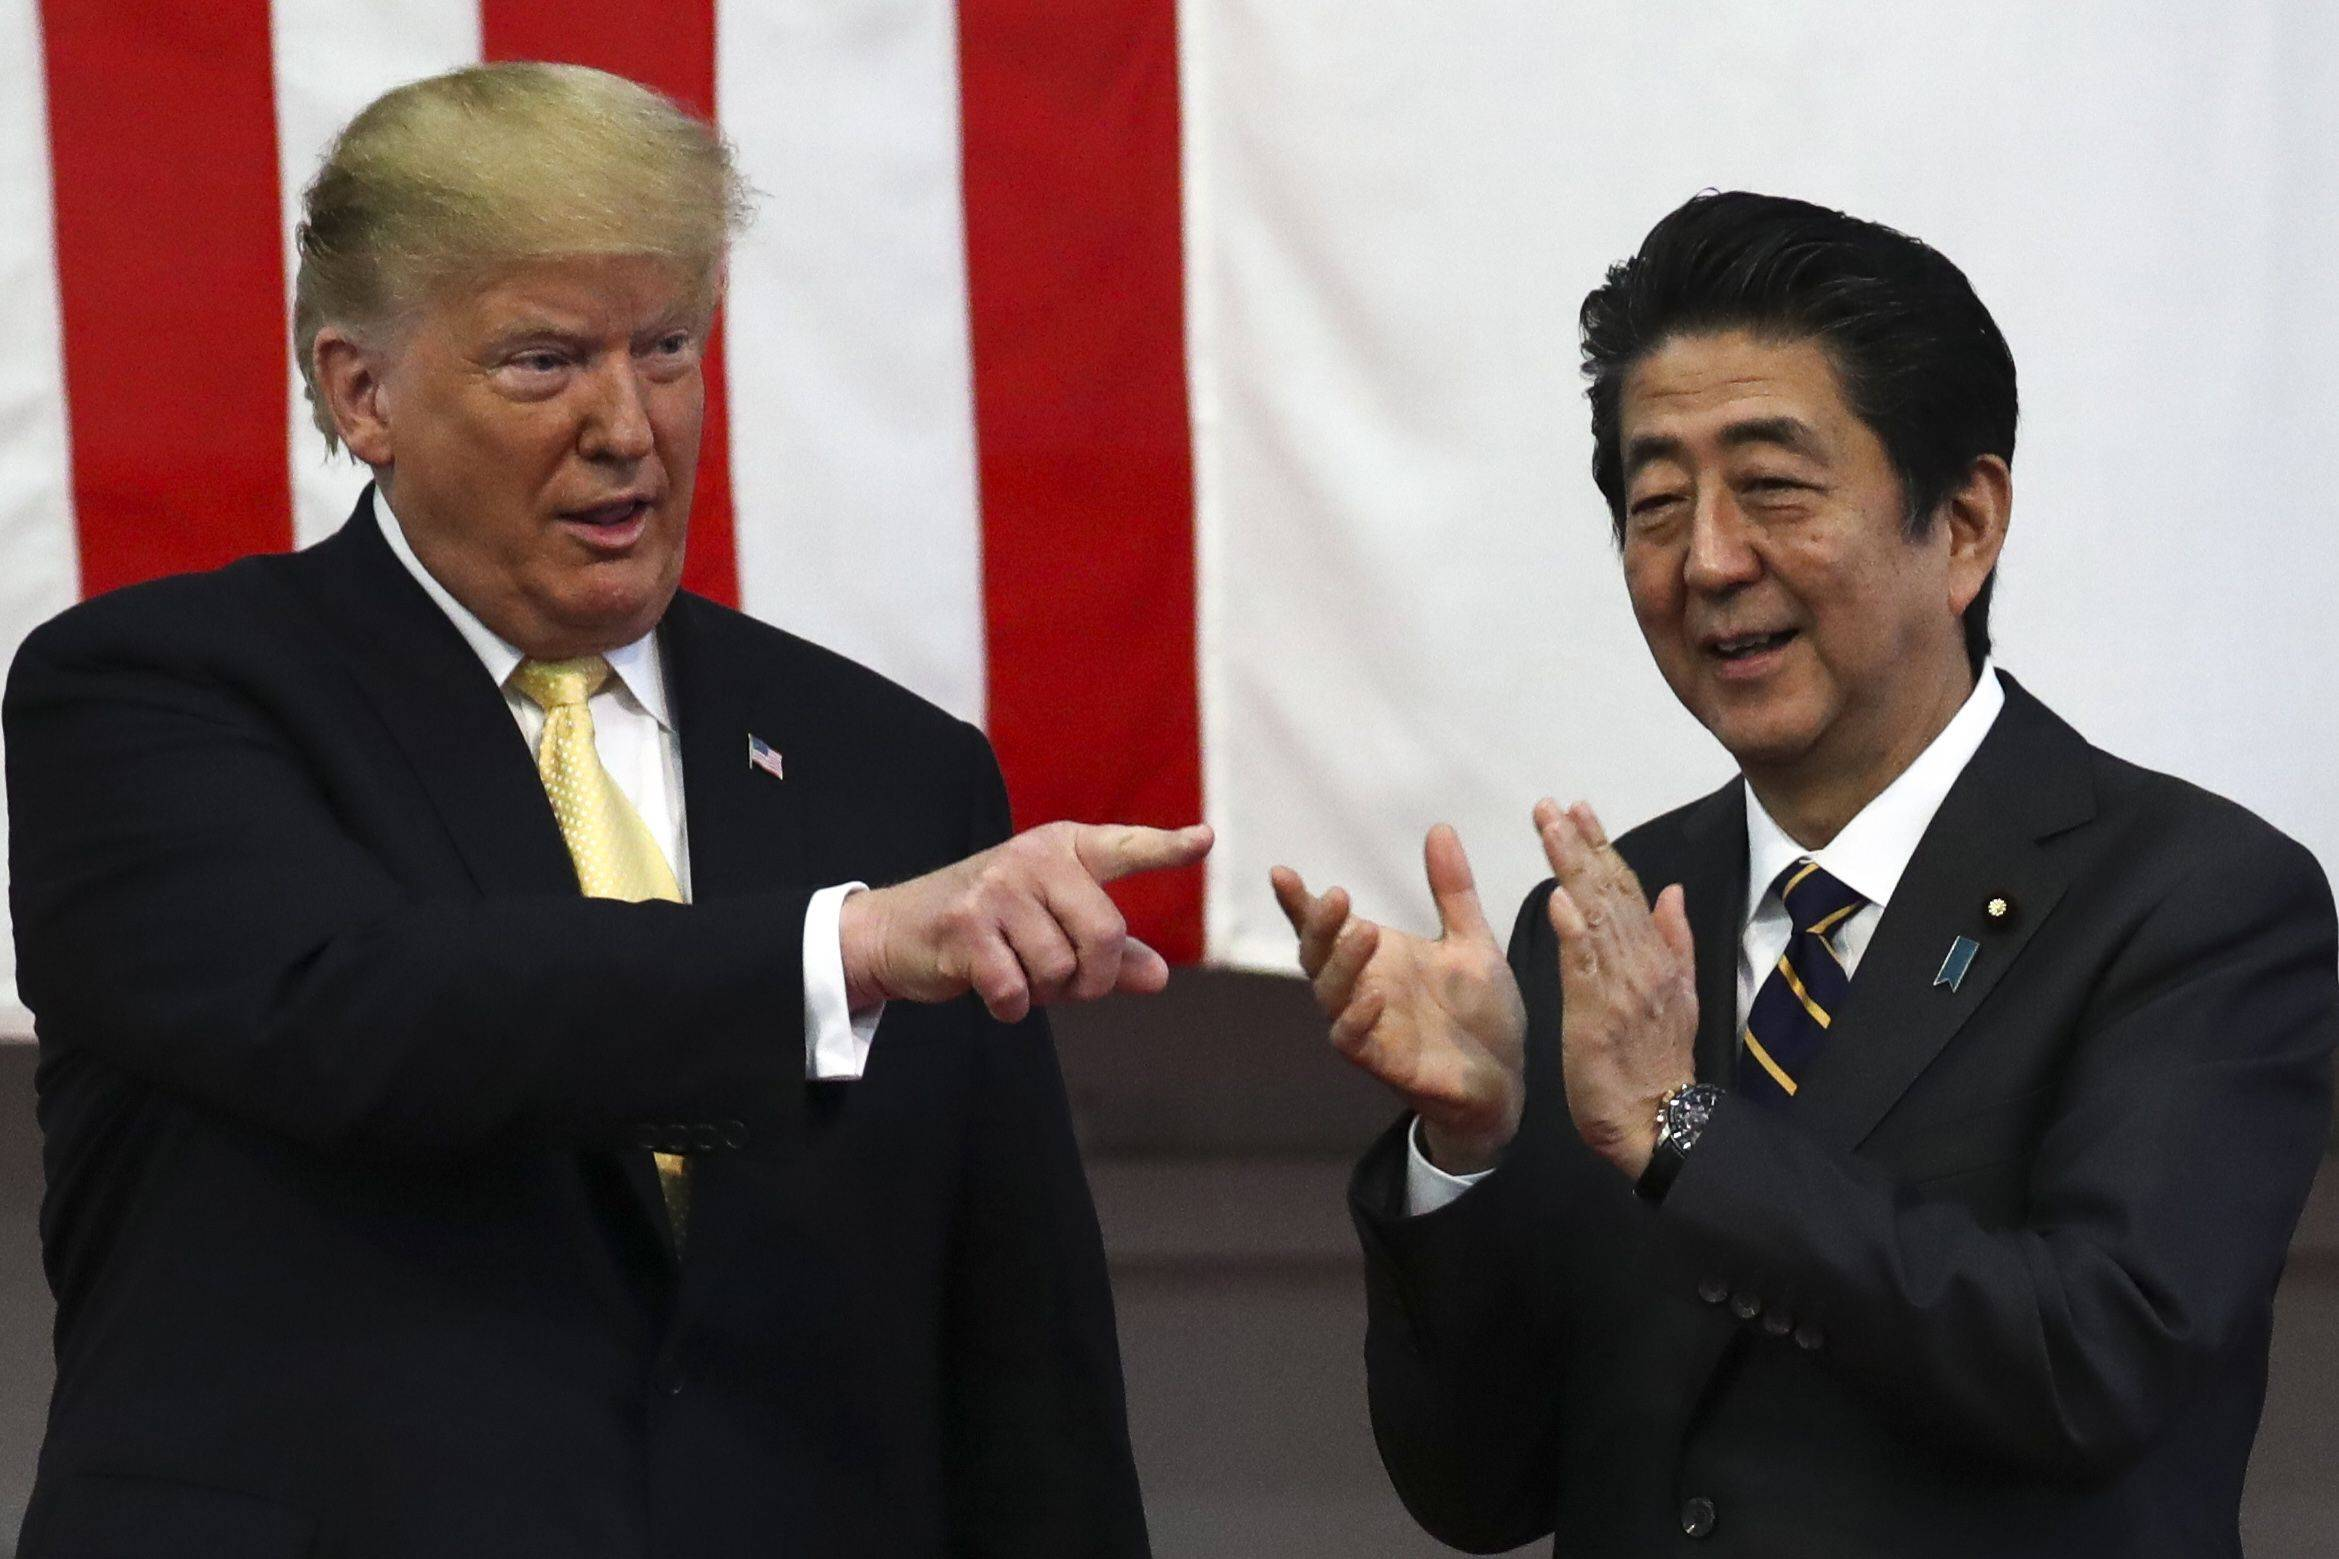 U.S. President Donald Trump's best personal relationship among world leaders was with Prime Minister Shinzo Abe, according to former top U.S. official John Bolton. | POOL / VIA BLOOMBERG